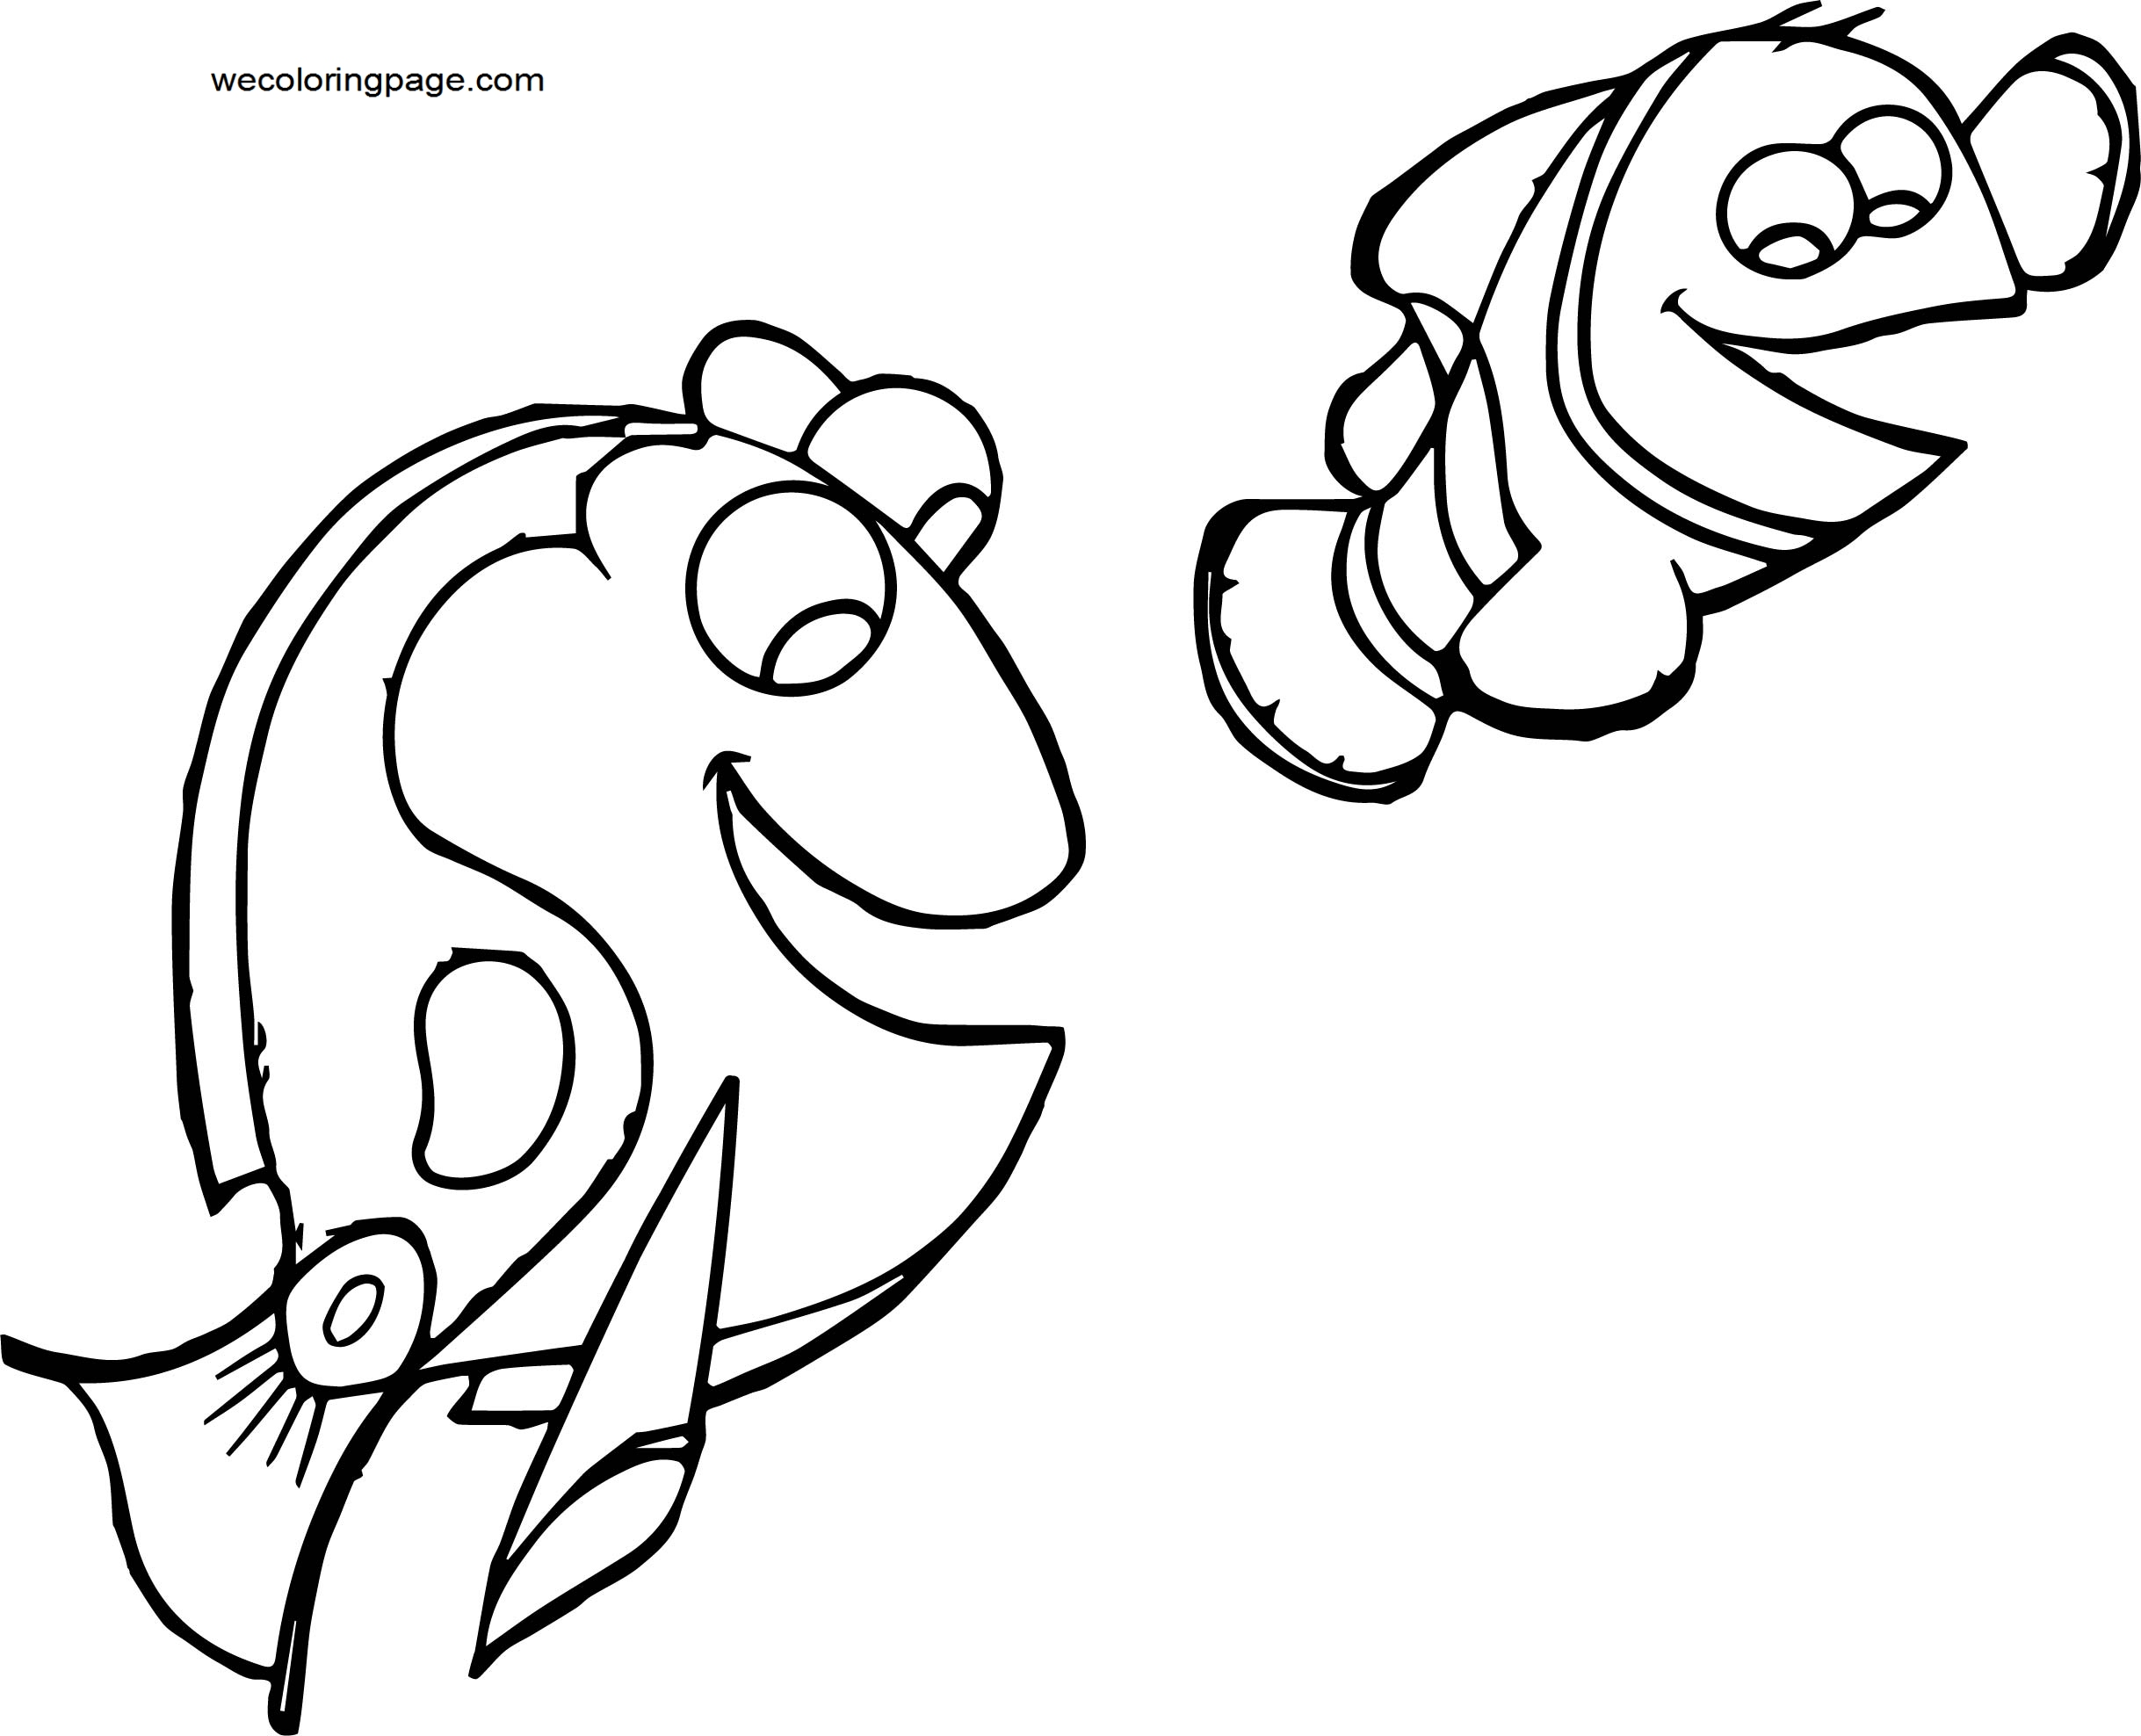 Disney Finding Nemofinding nemo 21 Coloring Pages